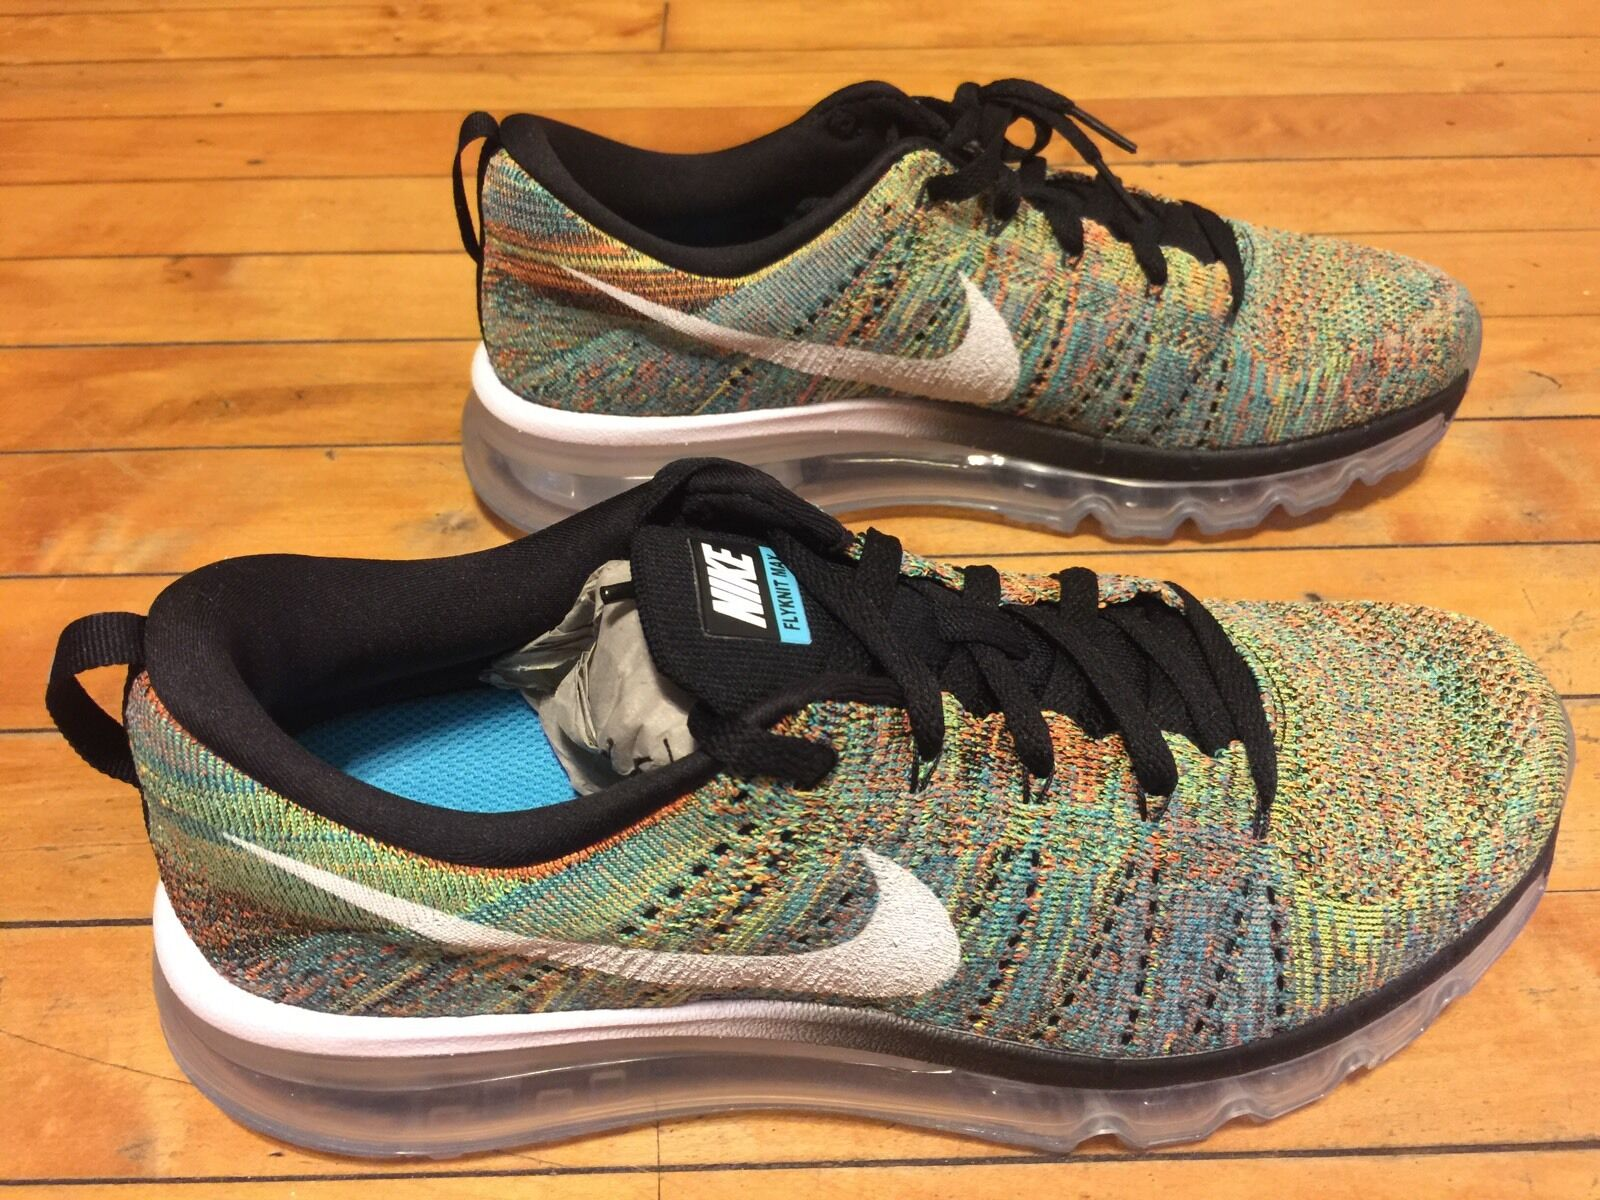 NIKE FLYKNIT MAX 620469-004 SIZE 8.5 MULTICOLOR SUPREME LIMITED SOLD OUT QS New shoes for men and women, limited time discount